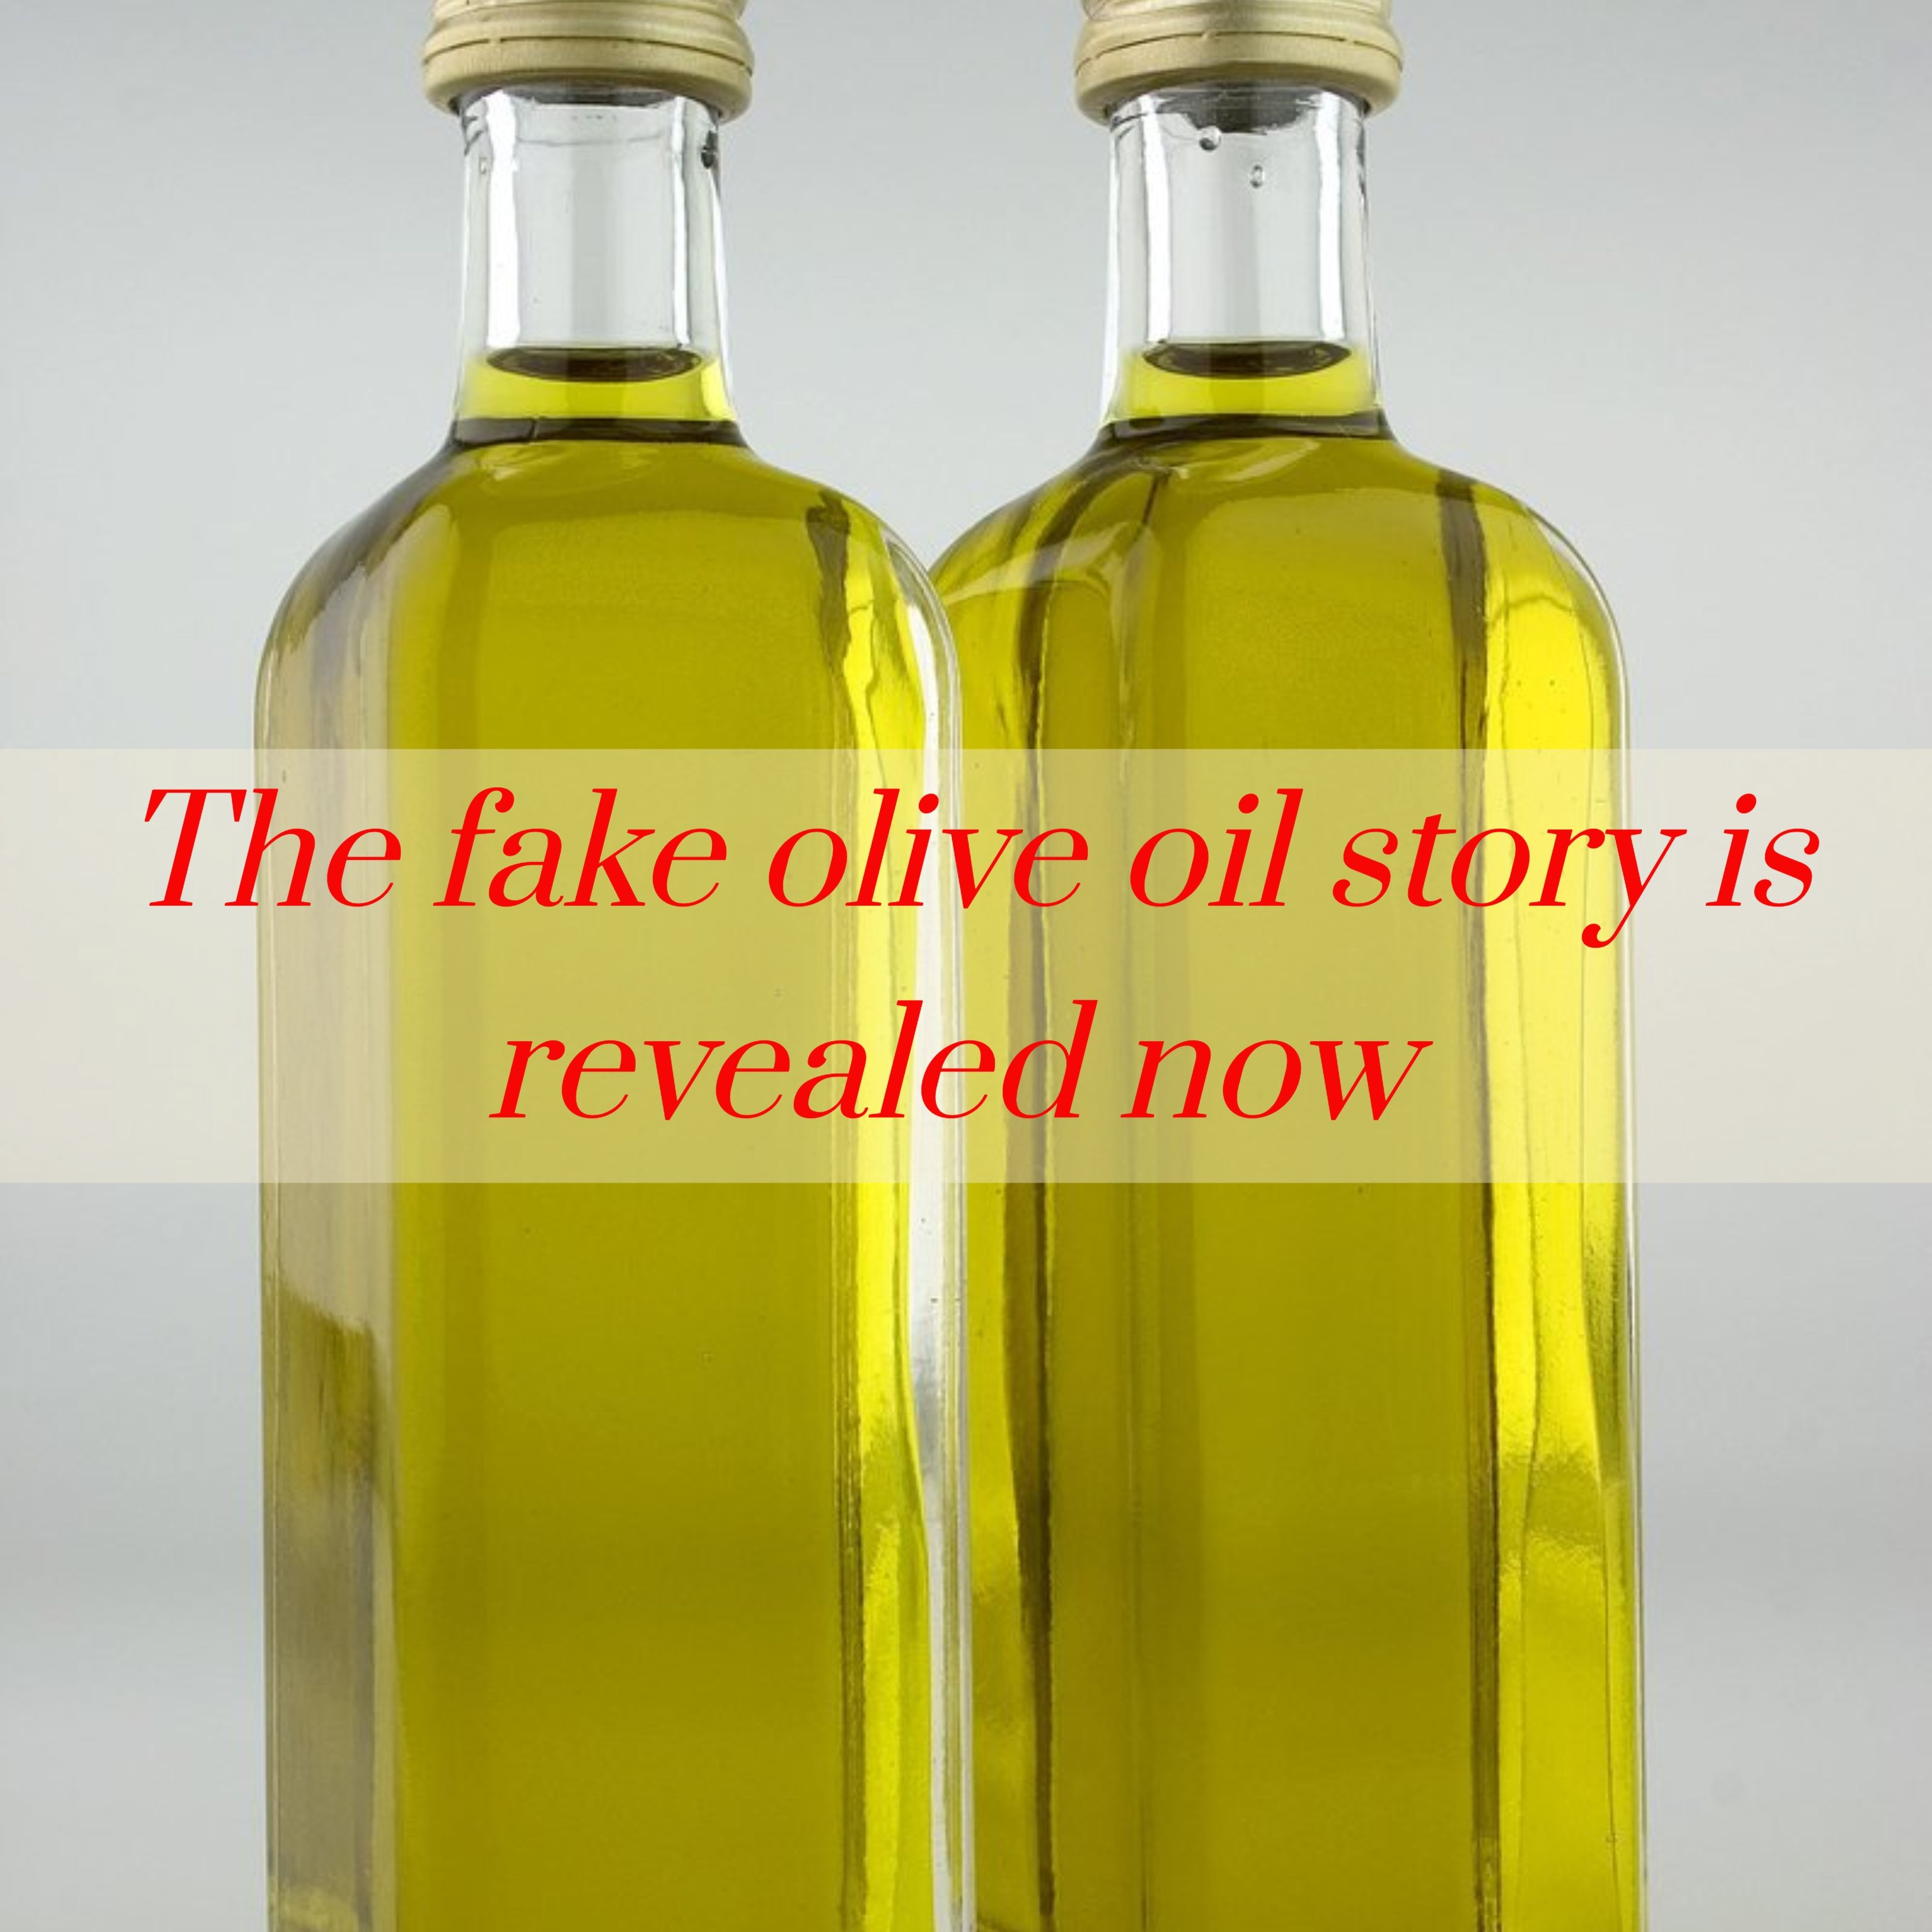 How to buy real olive oil? How to avoid buying fake olive